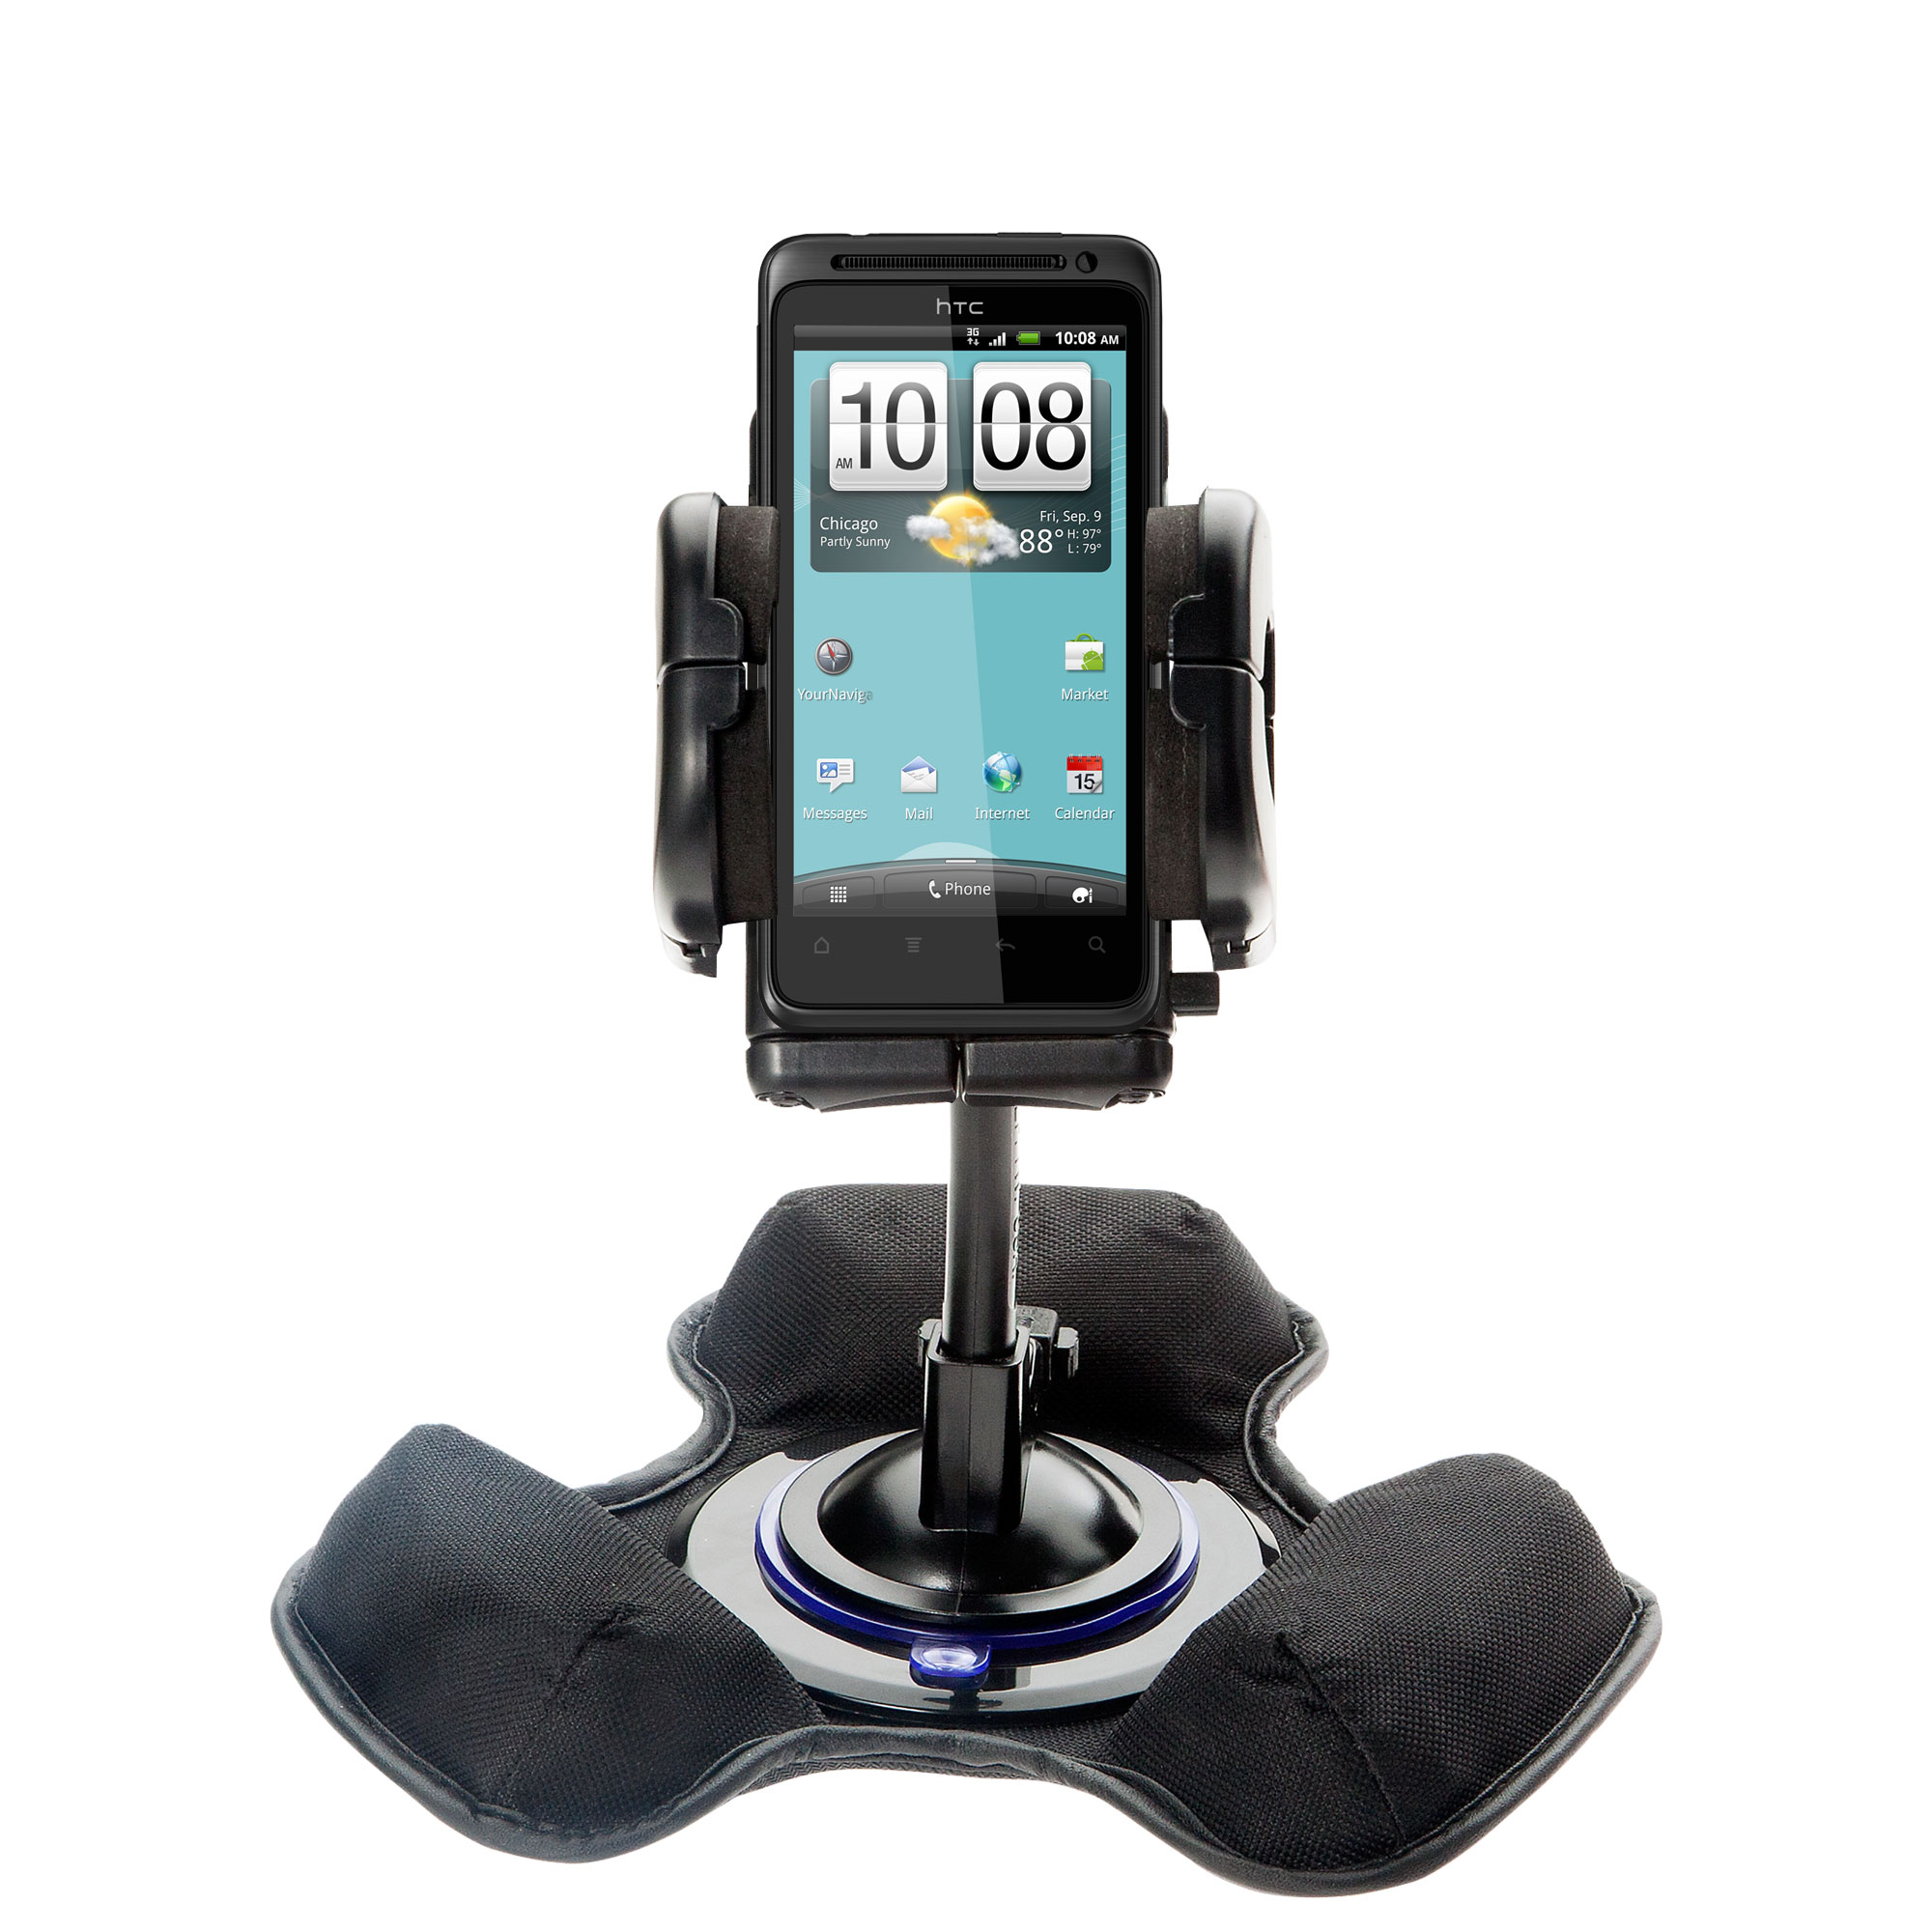 Dash and Windshield Holder compatible with the HTC Hero S